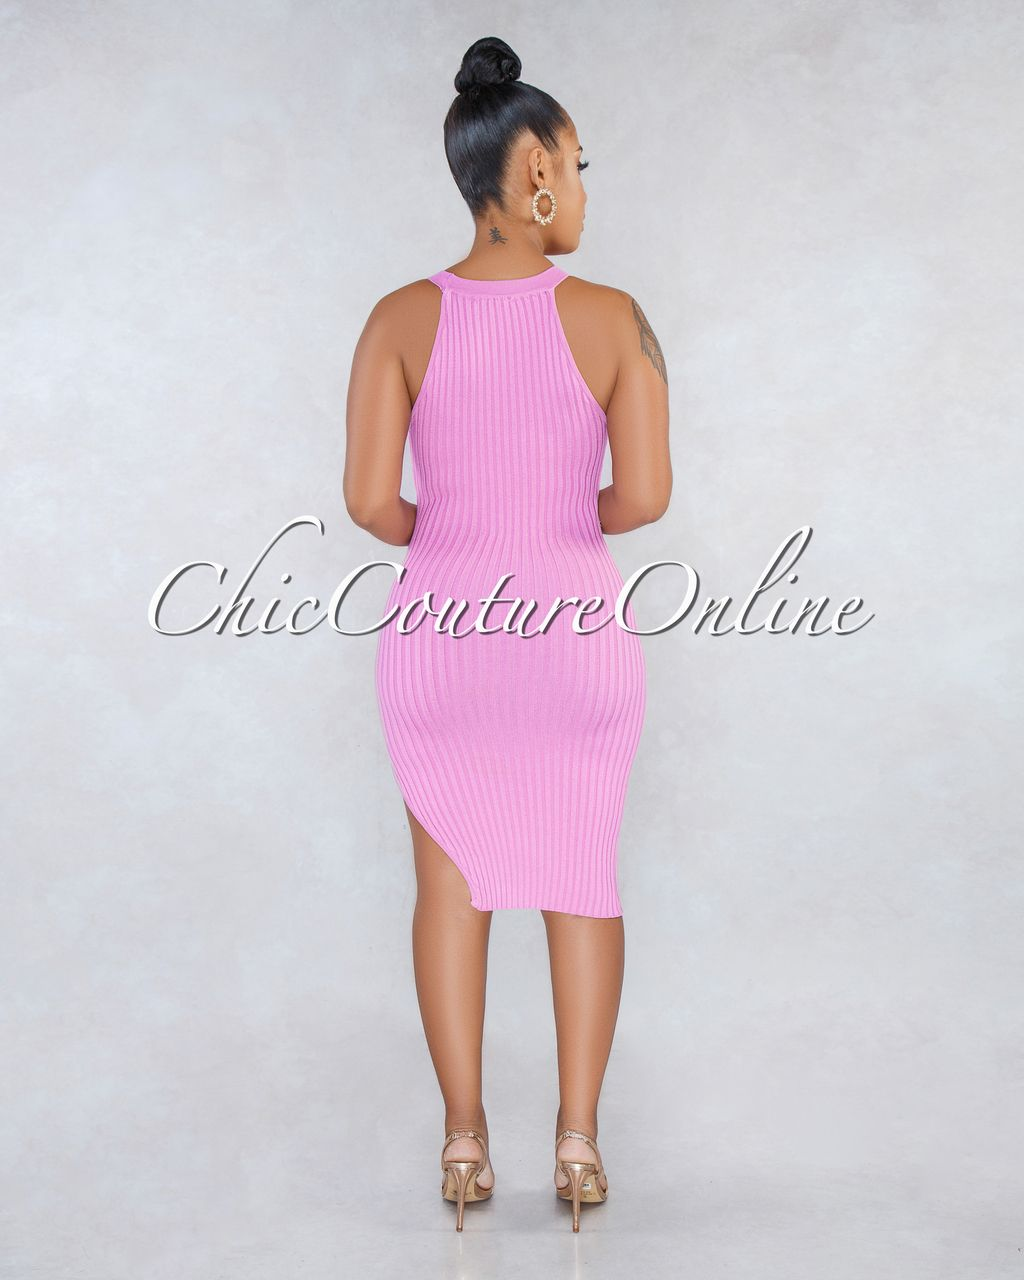 75dc8a779a3 Chic Couture Online - Talia Dusty Pink Racer Leg Slit Ribbed Dress